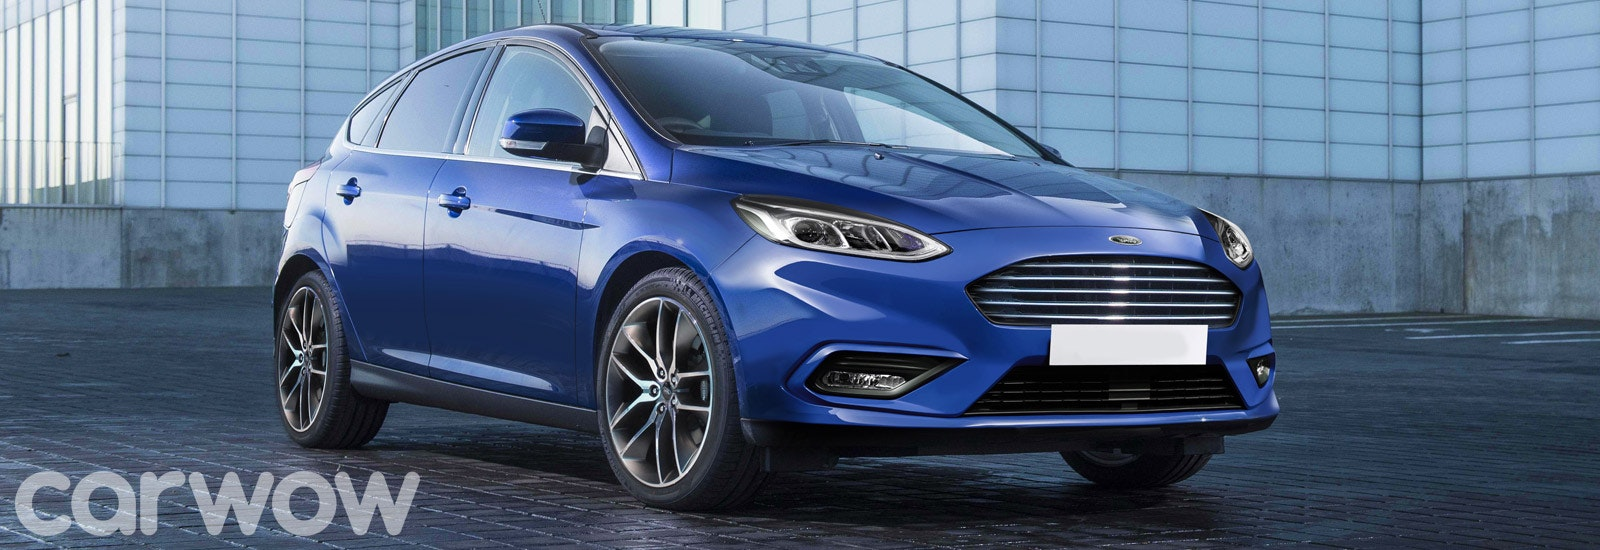 Ford Fiesta Vignale 2017 Review By Car Magazine Autos Post